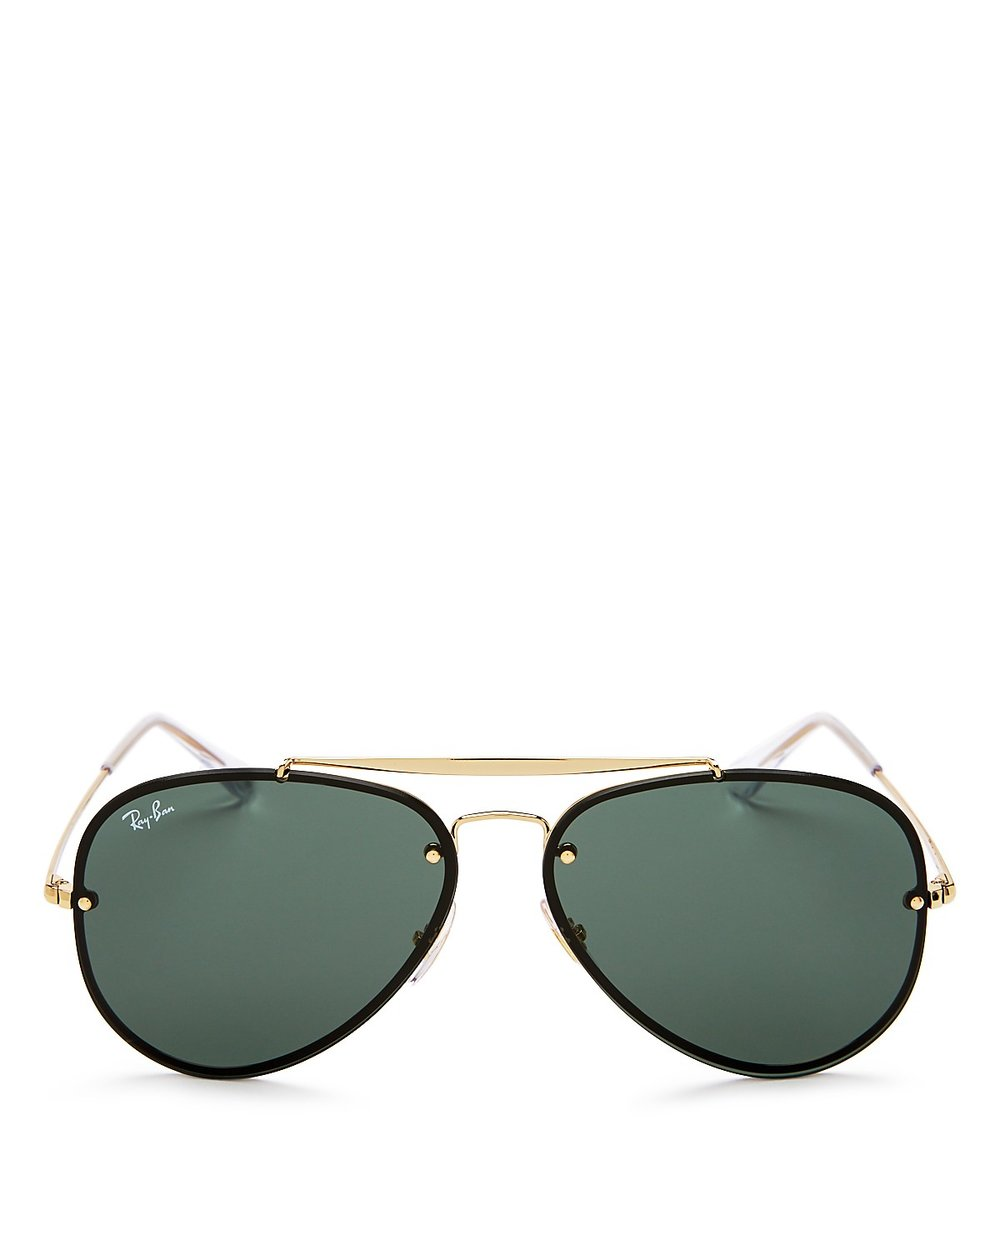 Ray-Ban Blaze Aviator Sunglasses, 61mm